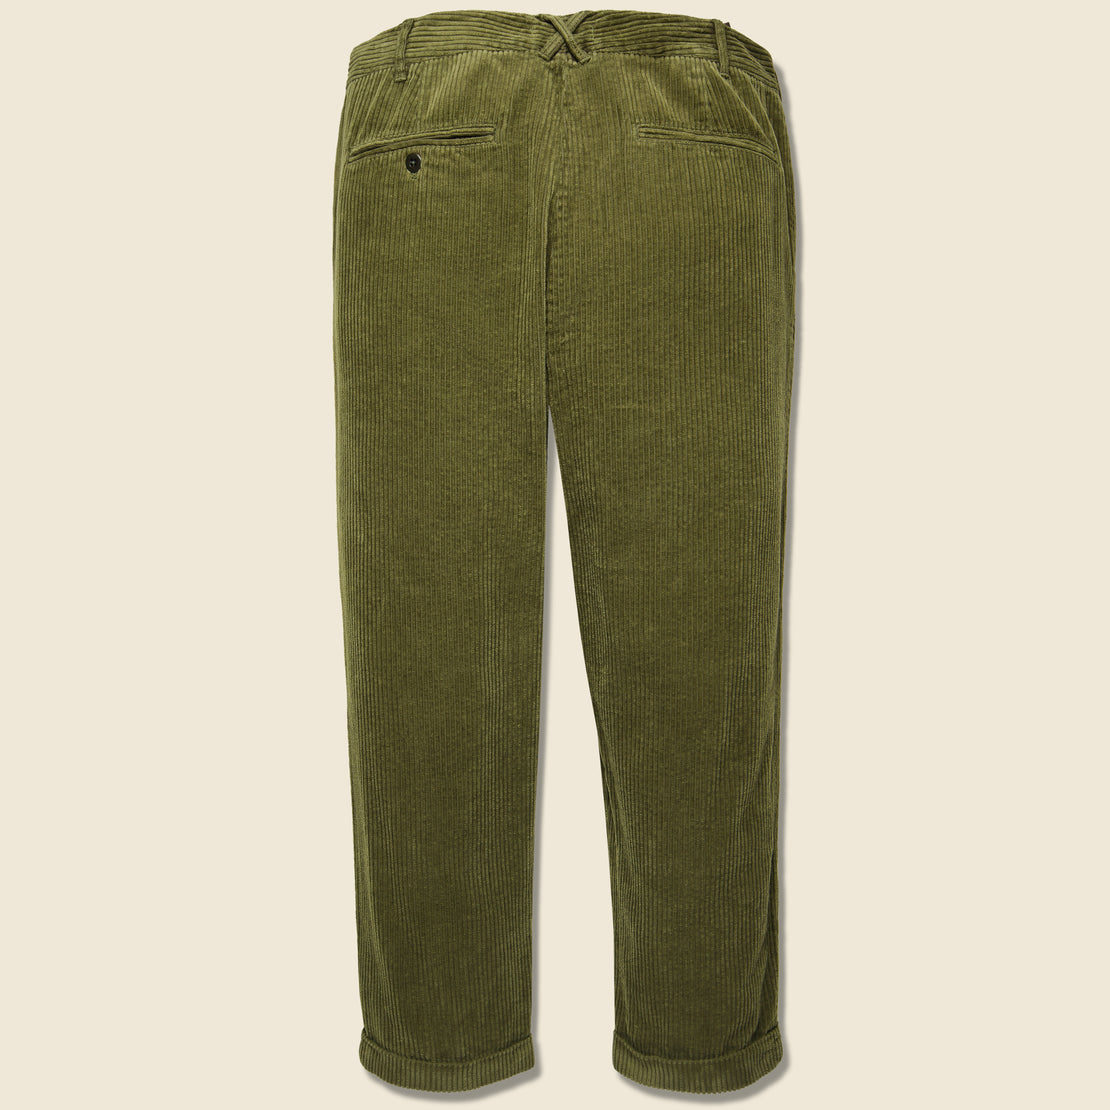 Rugged Corduroy Pleated Pant - Olive